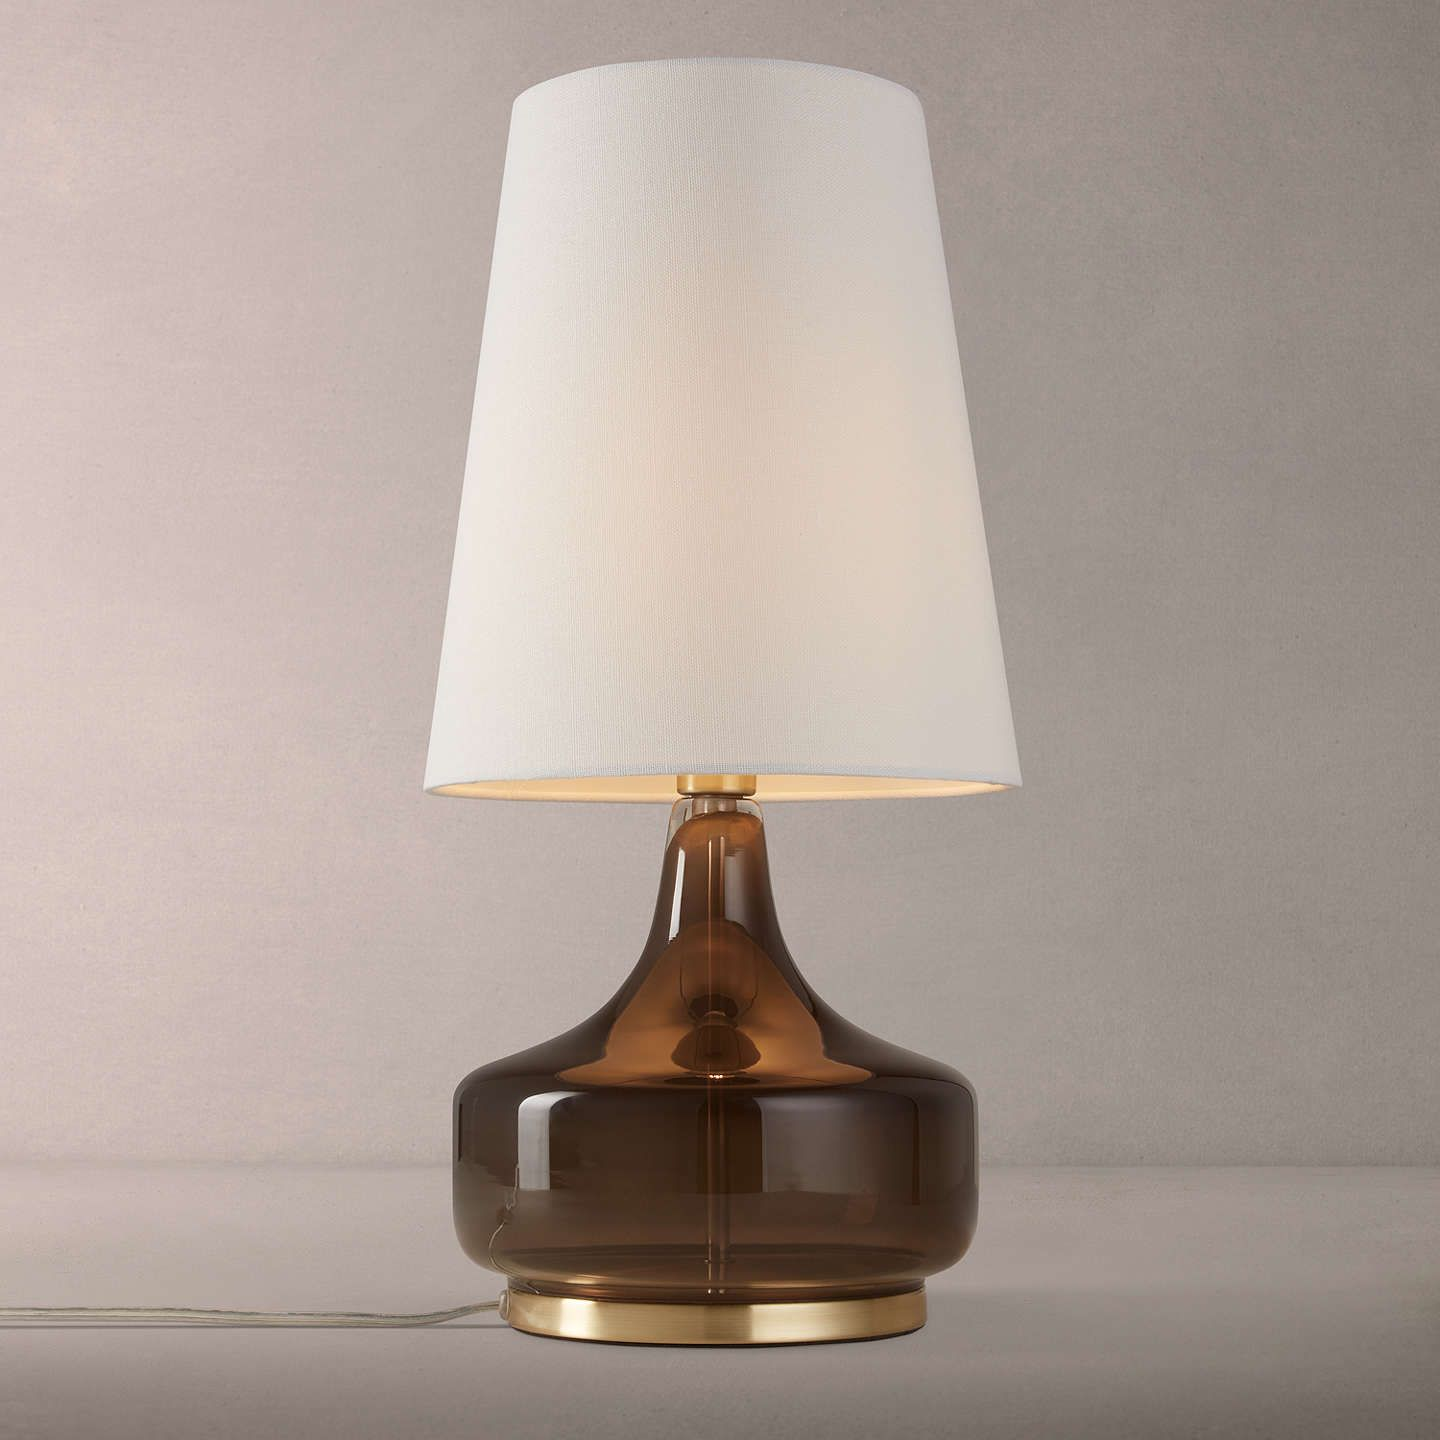 Desk & Table Lamps On Sale And Offers